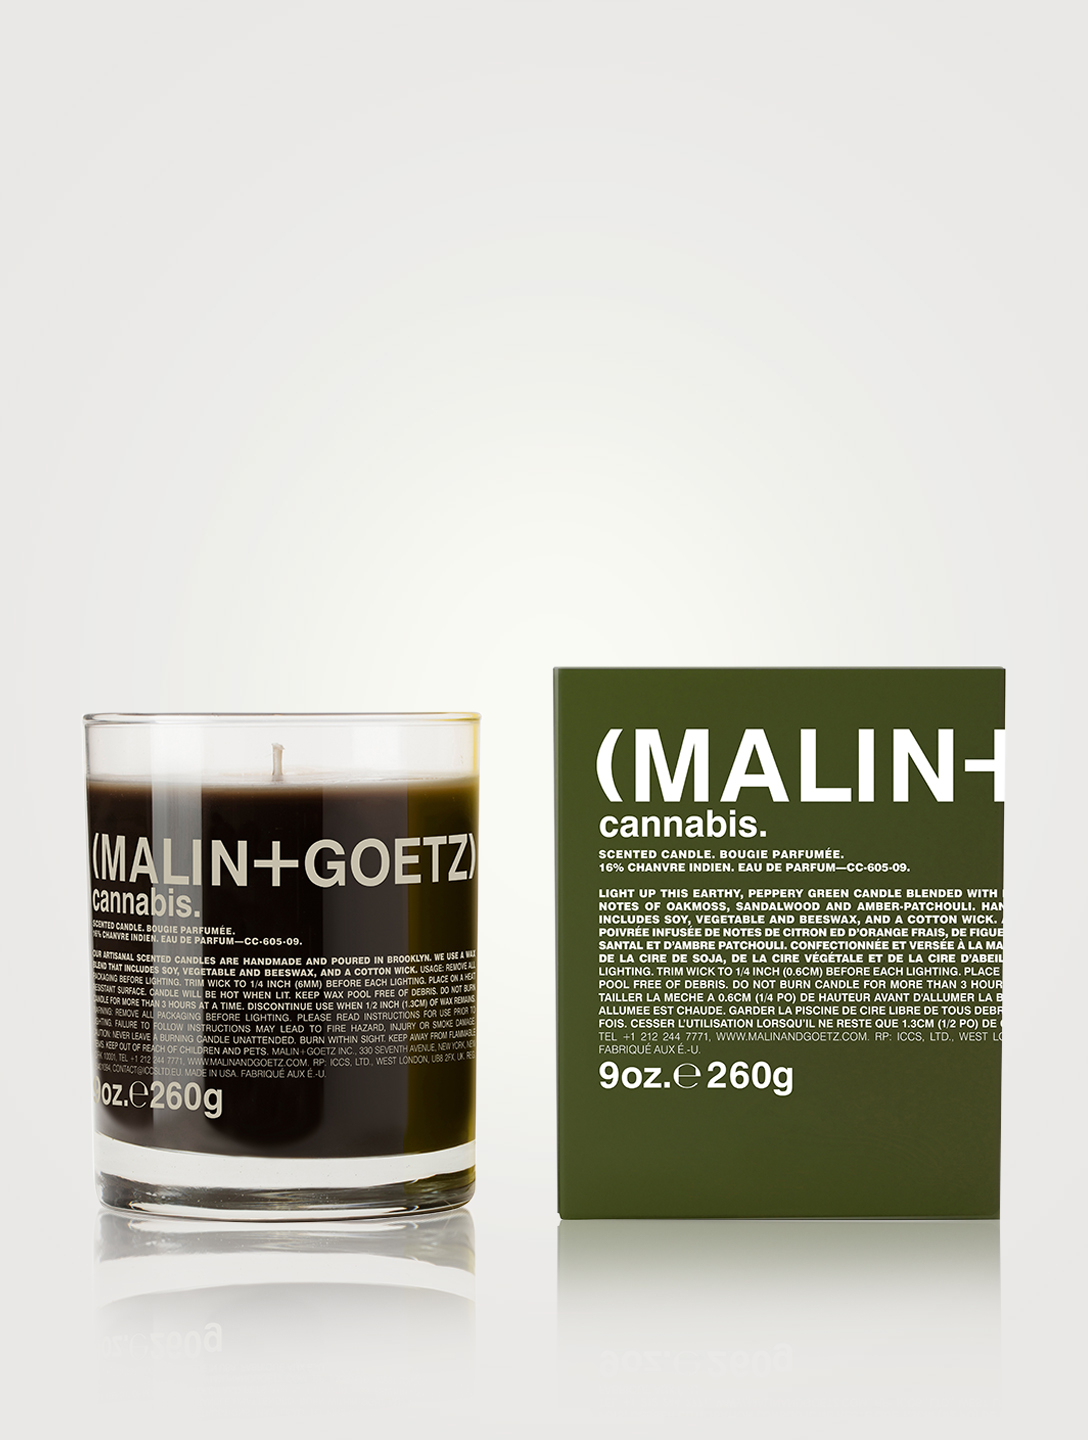 MALIN + GOETZ cannabis candle Beauty